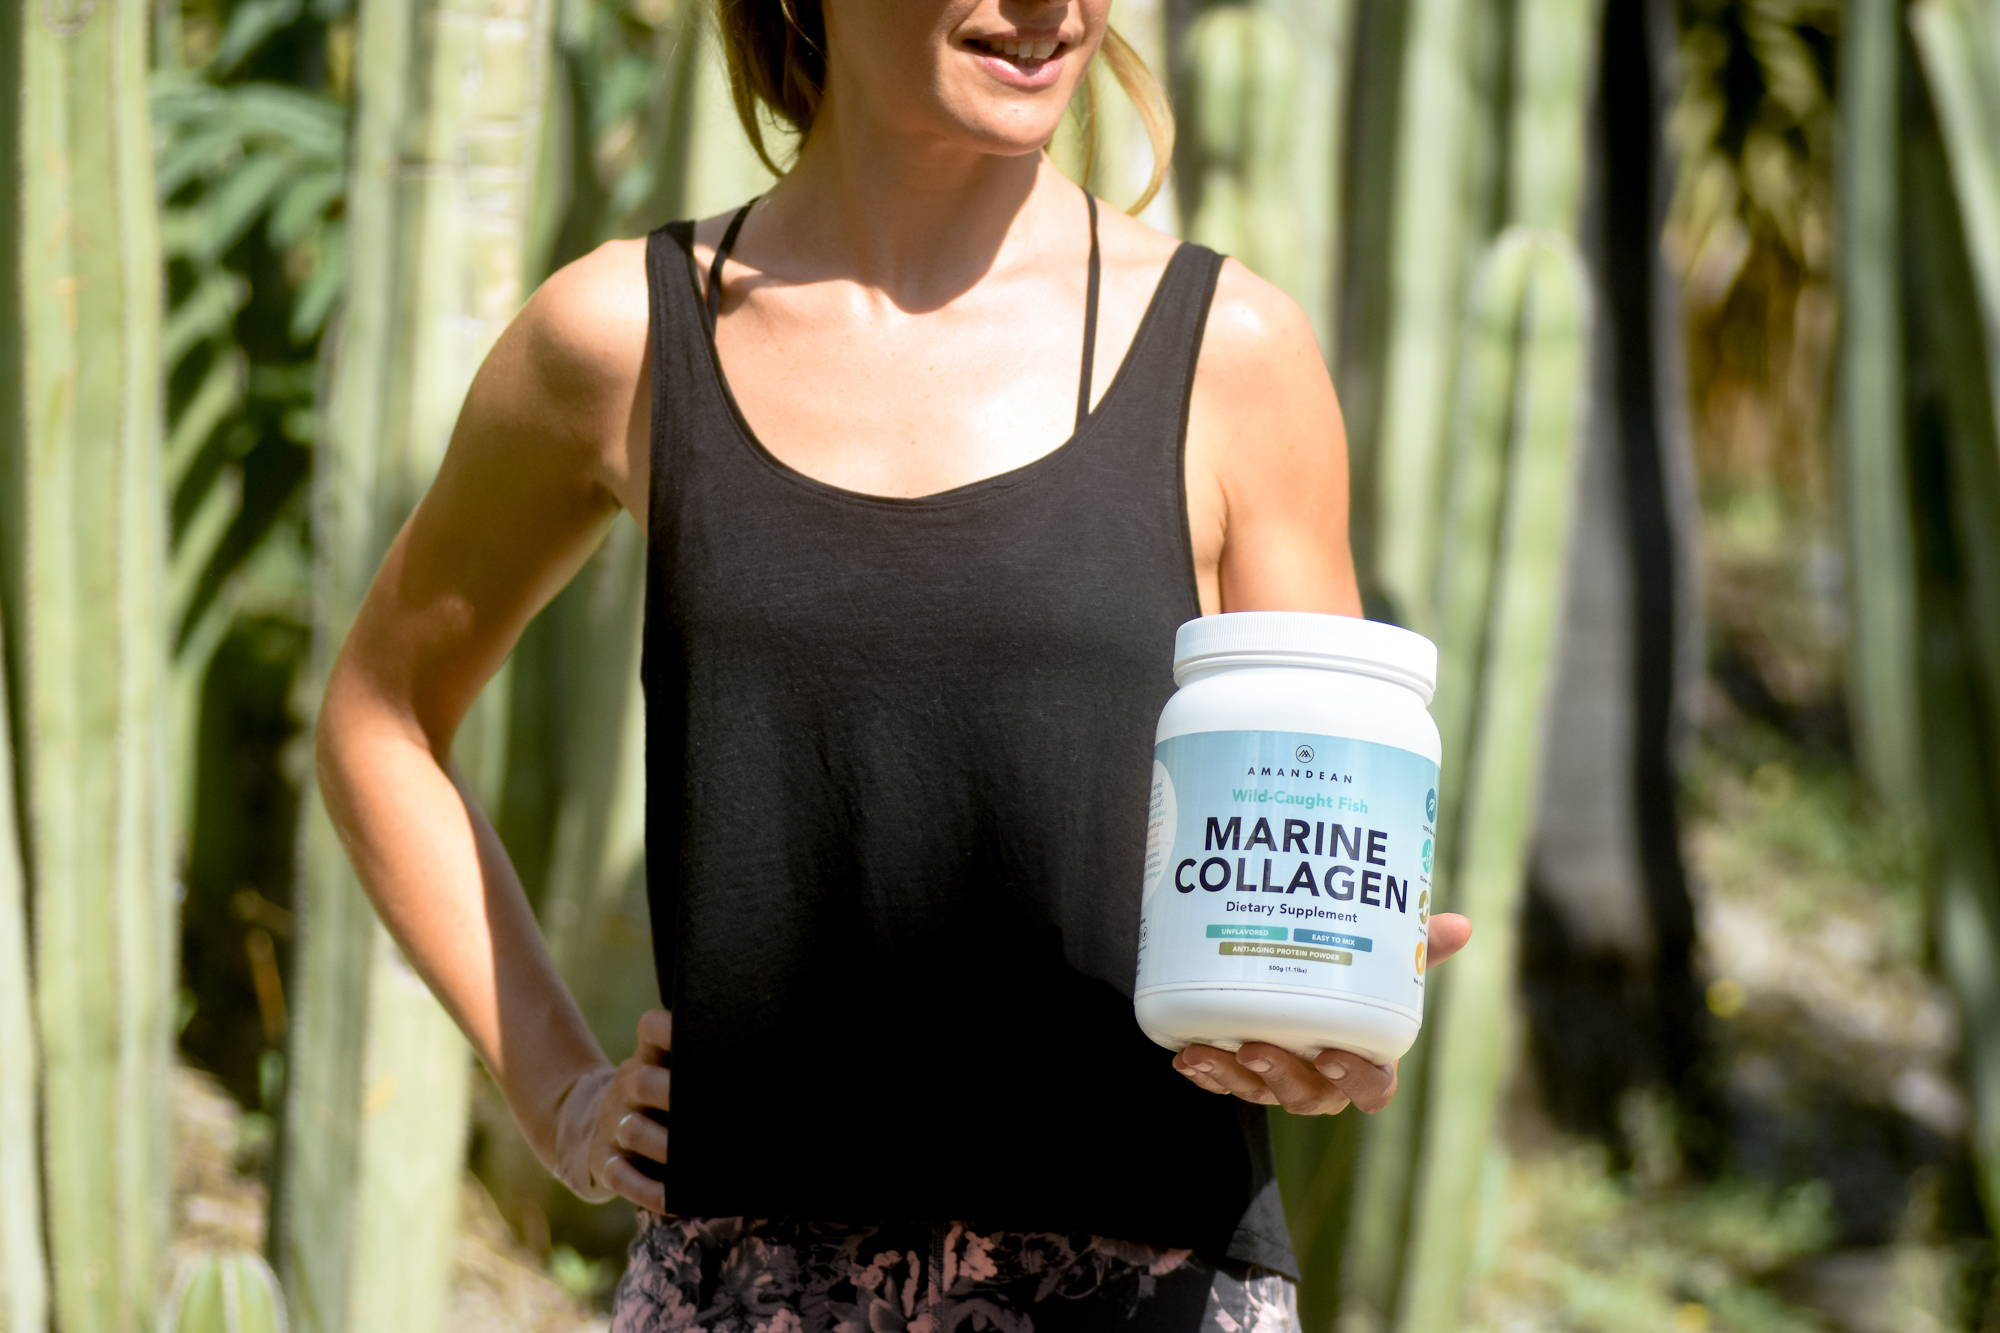 Fitness influencer using Wild-Caught Marine Collagen